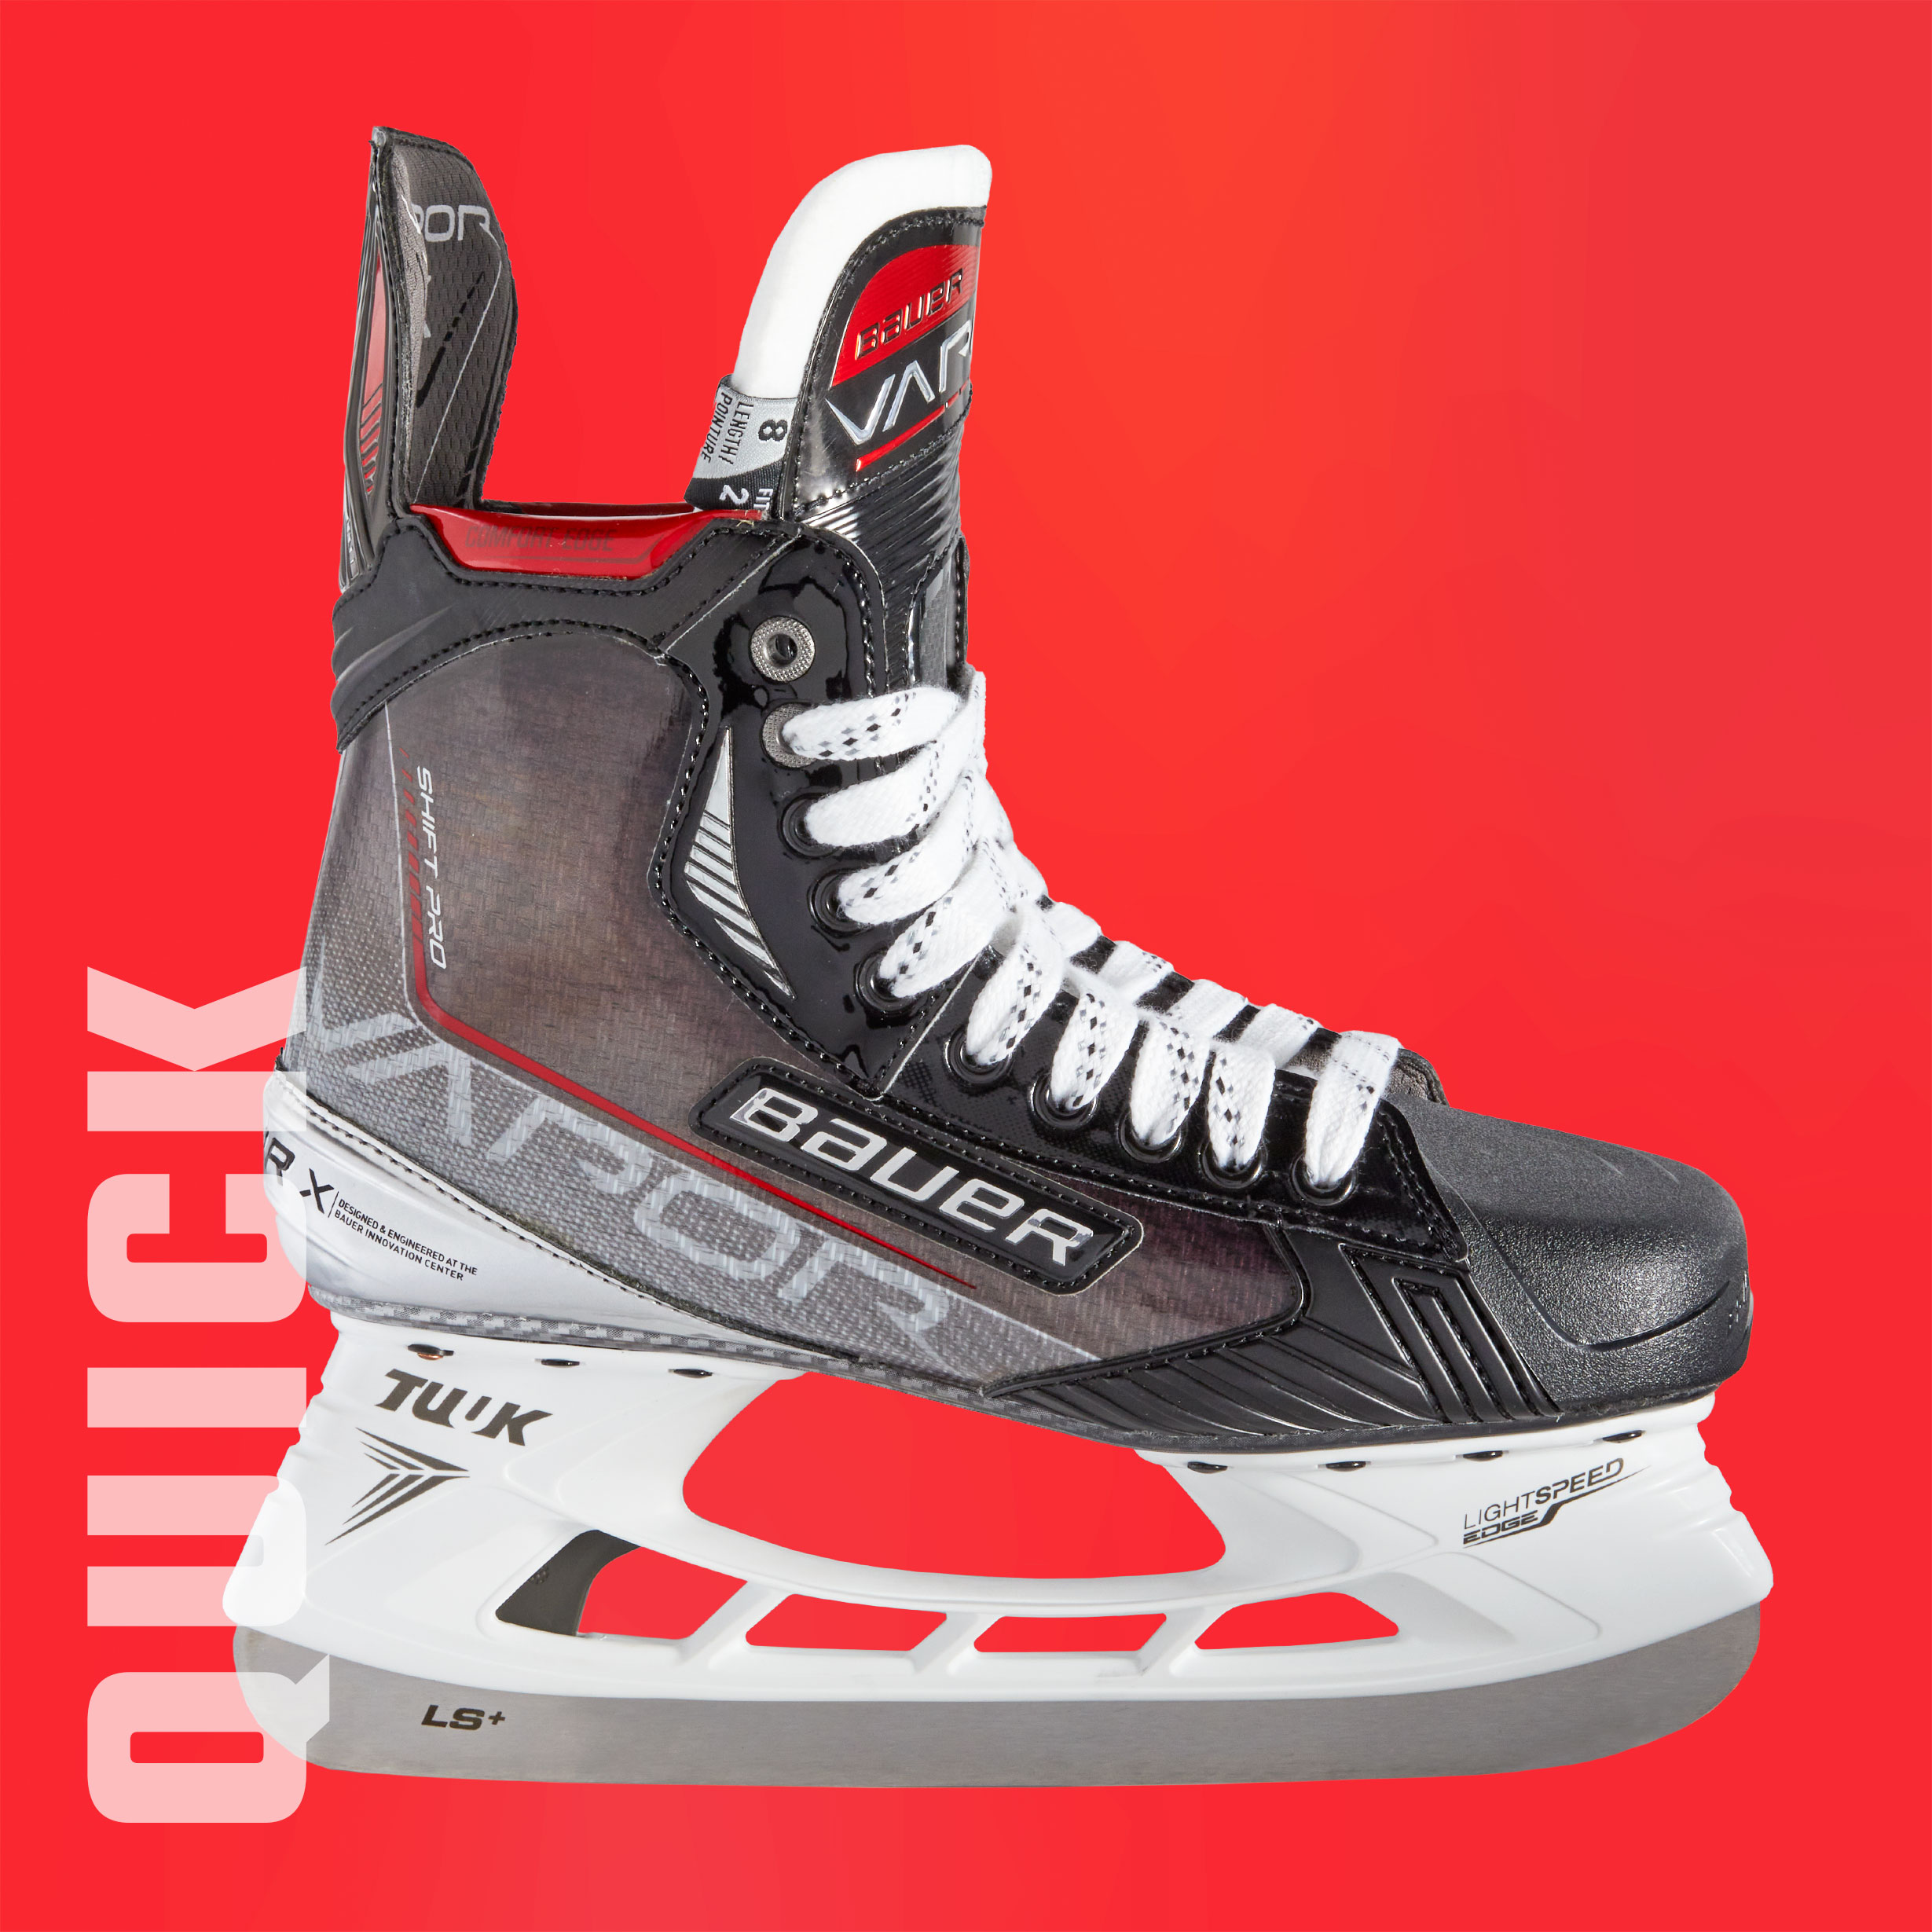 Source Exclusive Bauer Supreme Hockey Skates Only At Source For Sports